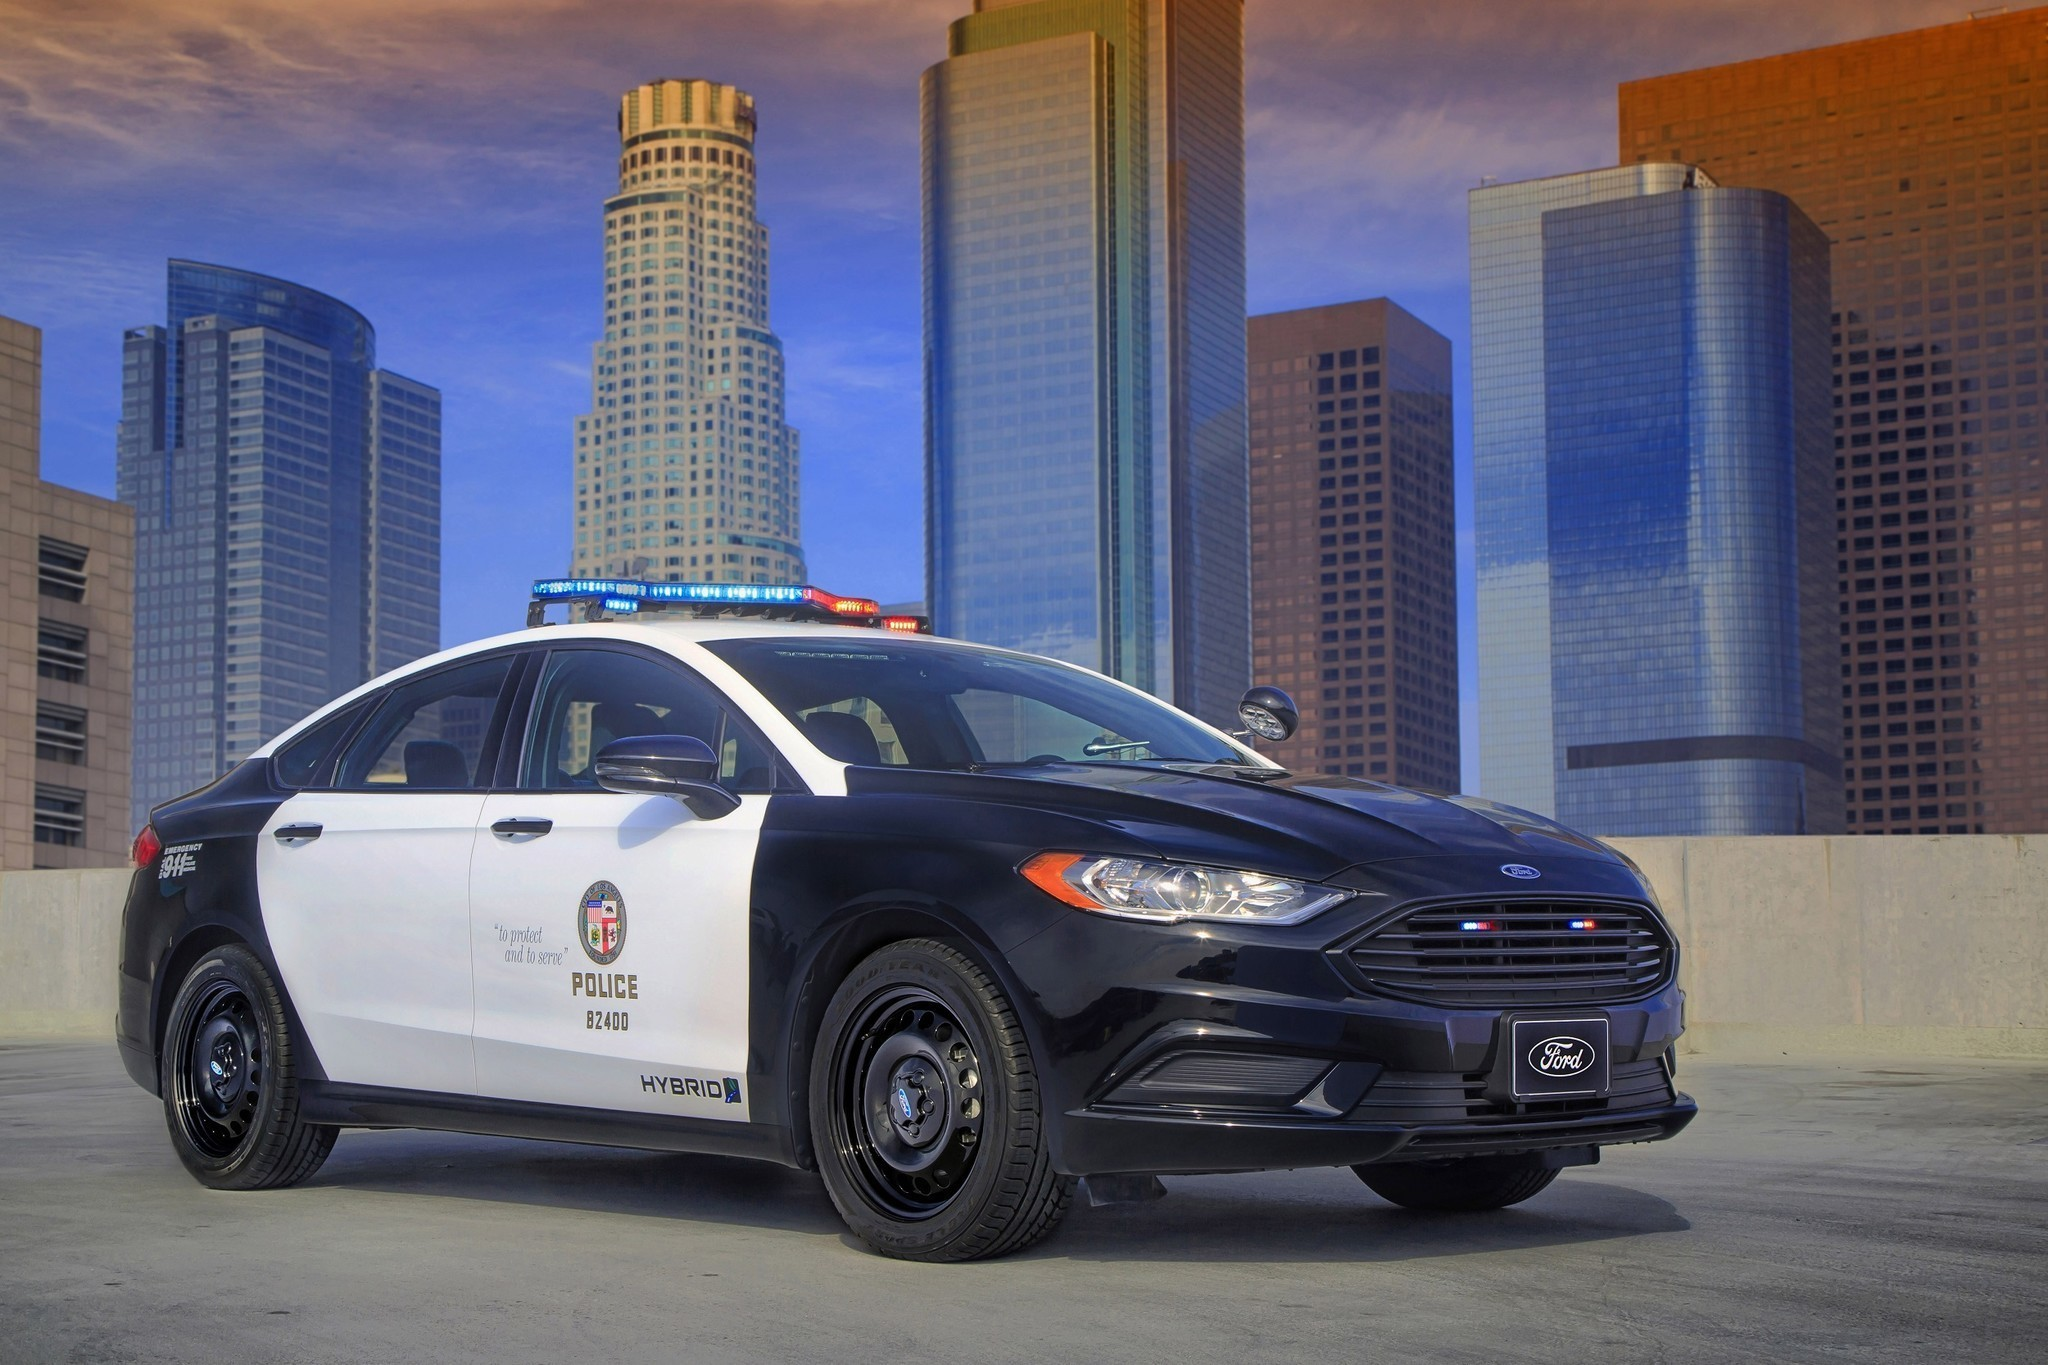 lapd could begin using the world 39 s first 39 pursuit rated 39 hybrid patrol car la times. Black Bedroom Furniture Sets. Home Design Ideas